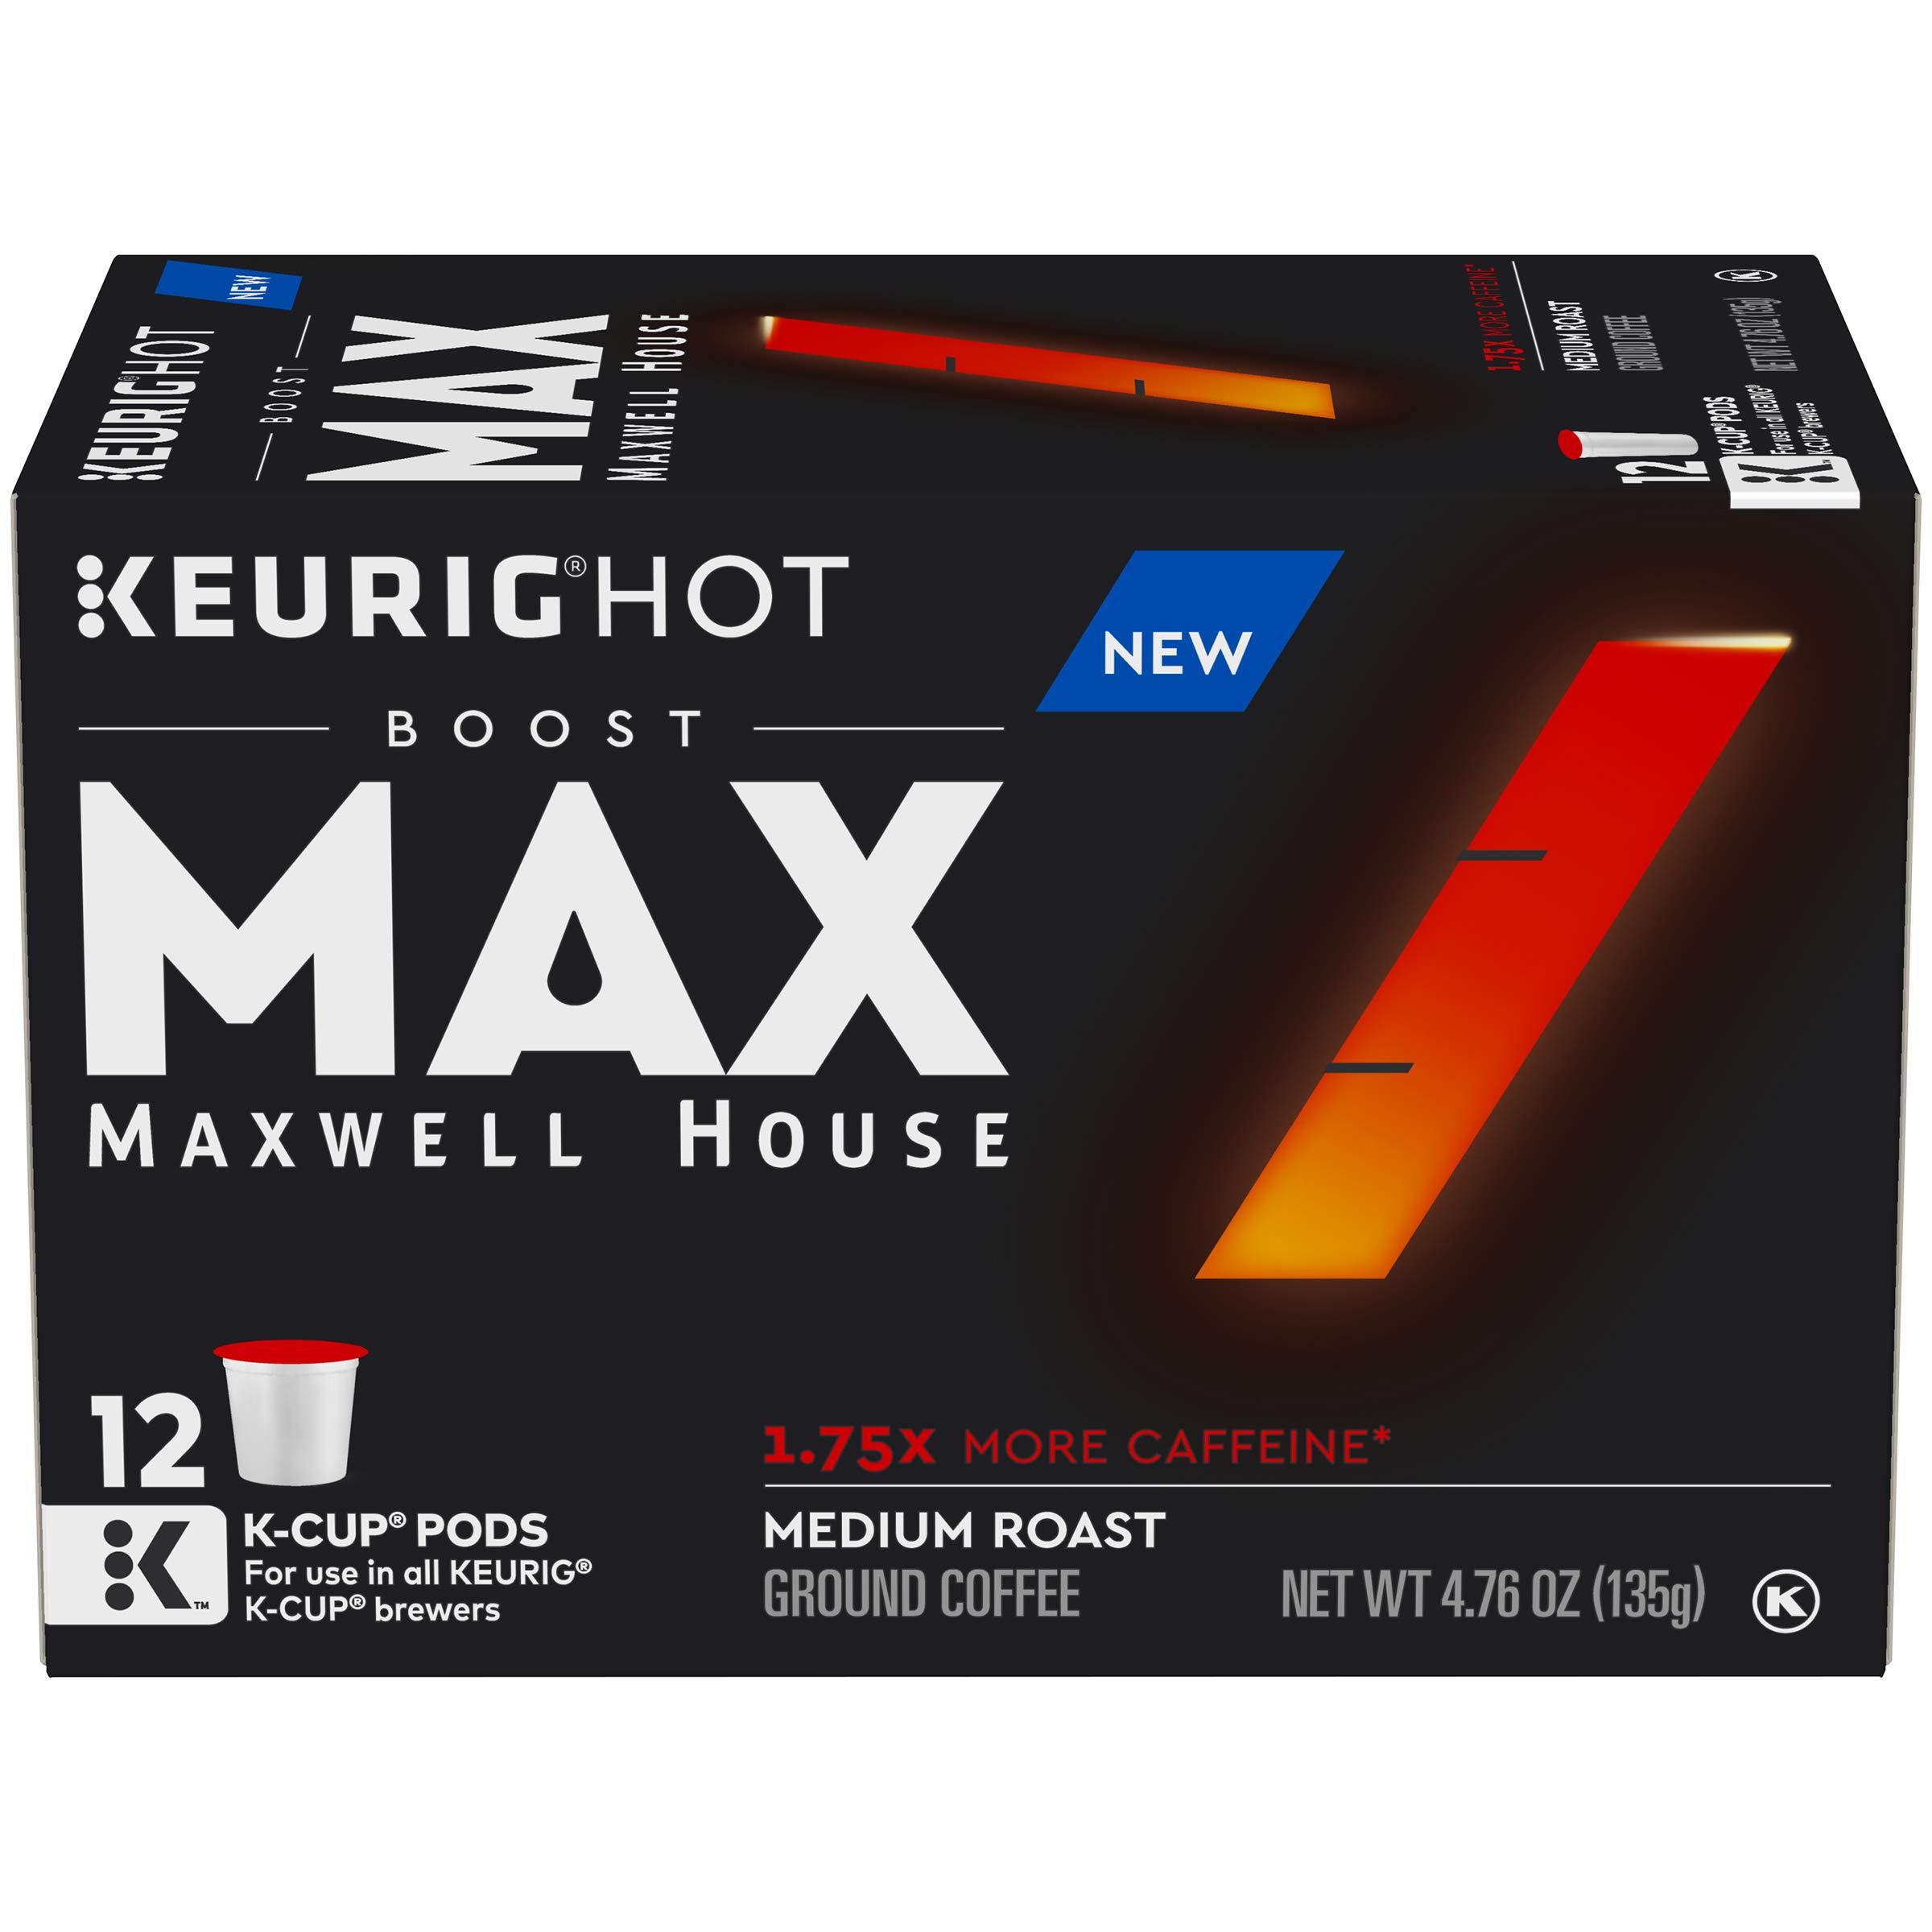 MAX by Maxwell House Boost 1.75x Caffeine Keurig K Cup Coffee Pods (72 Count, 6 Boxes of 12)